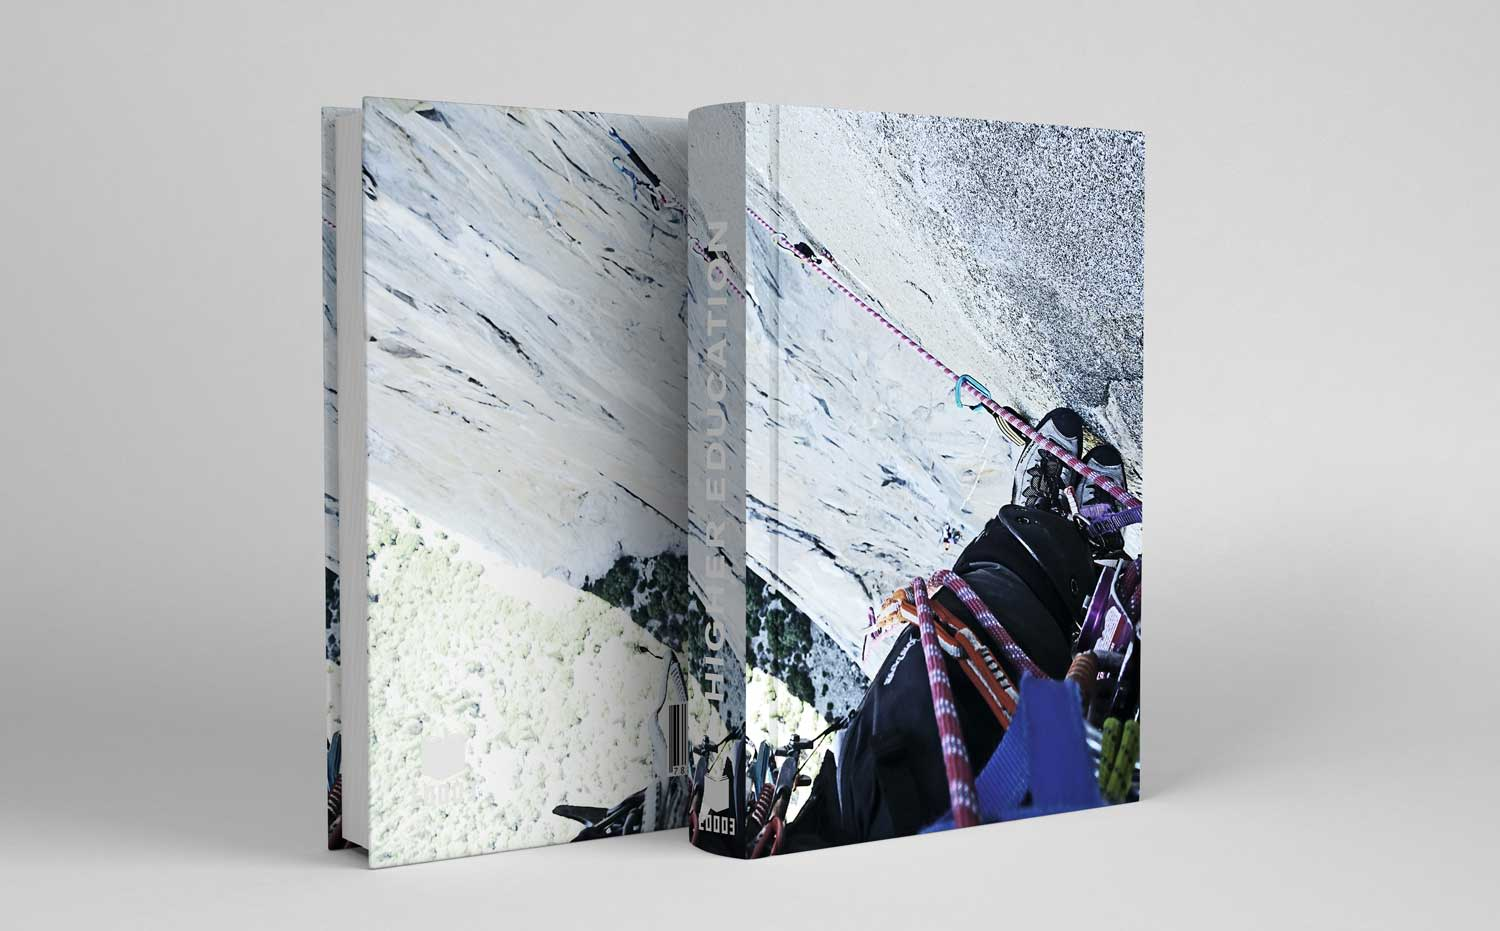 New Big Wall climbing Book